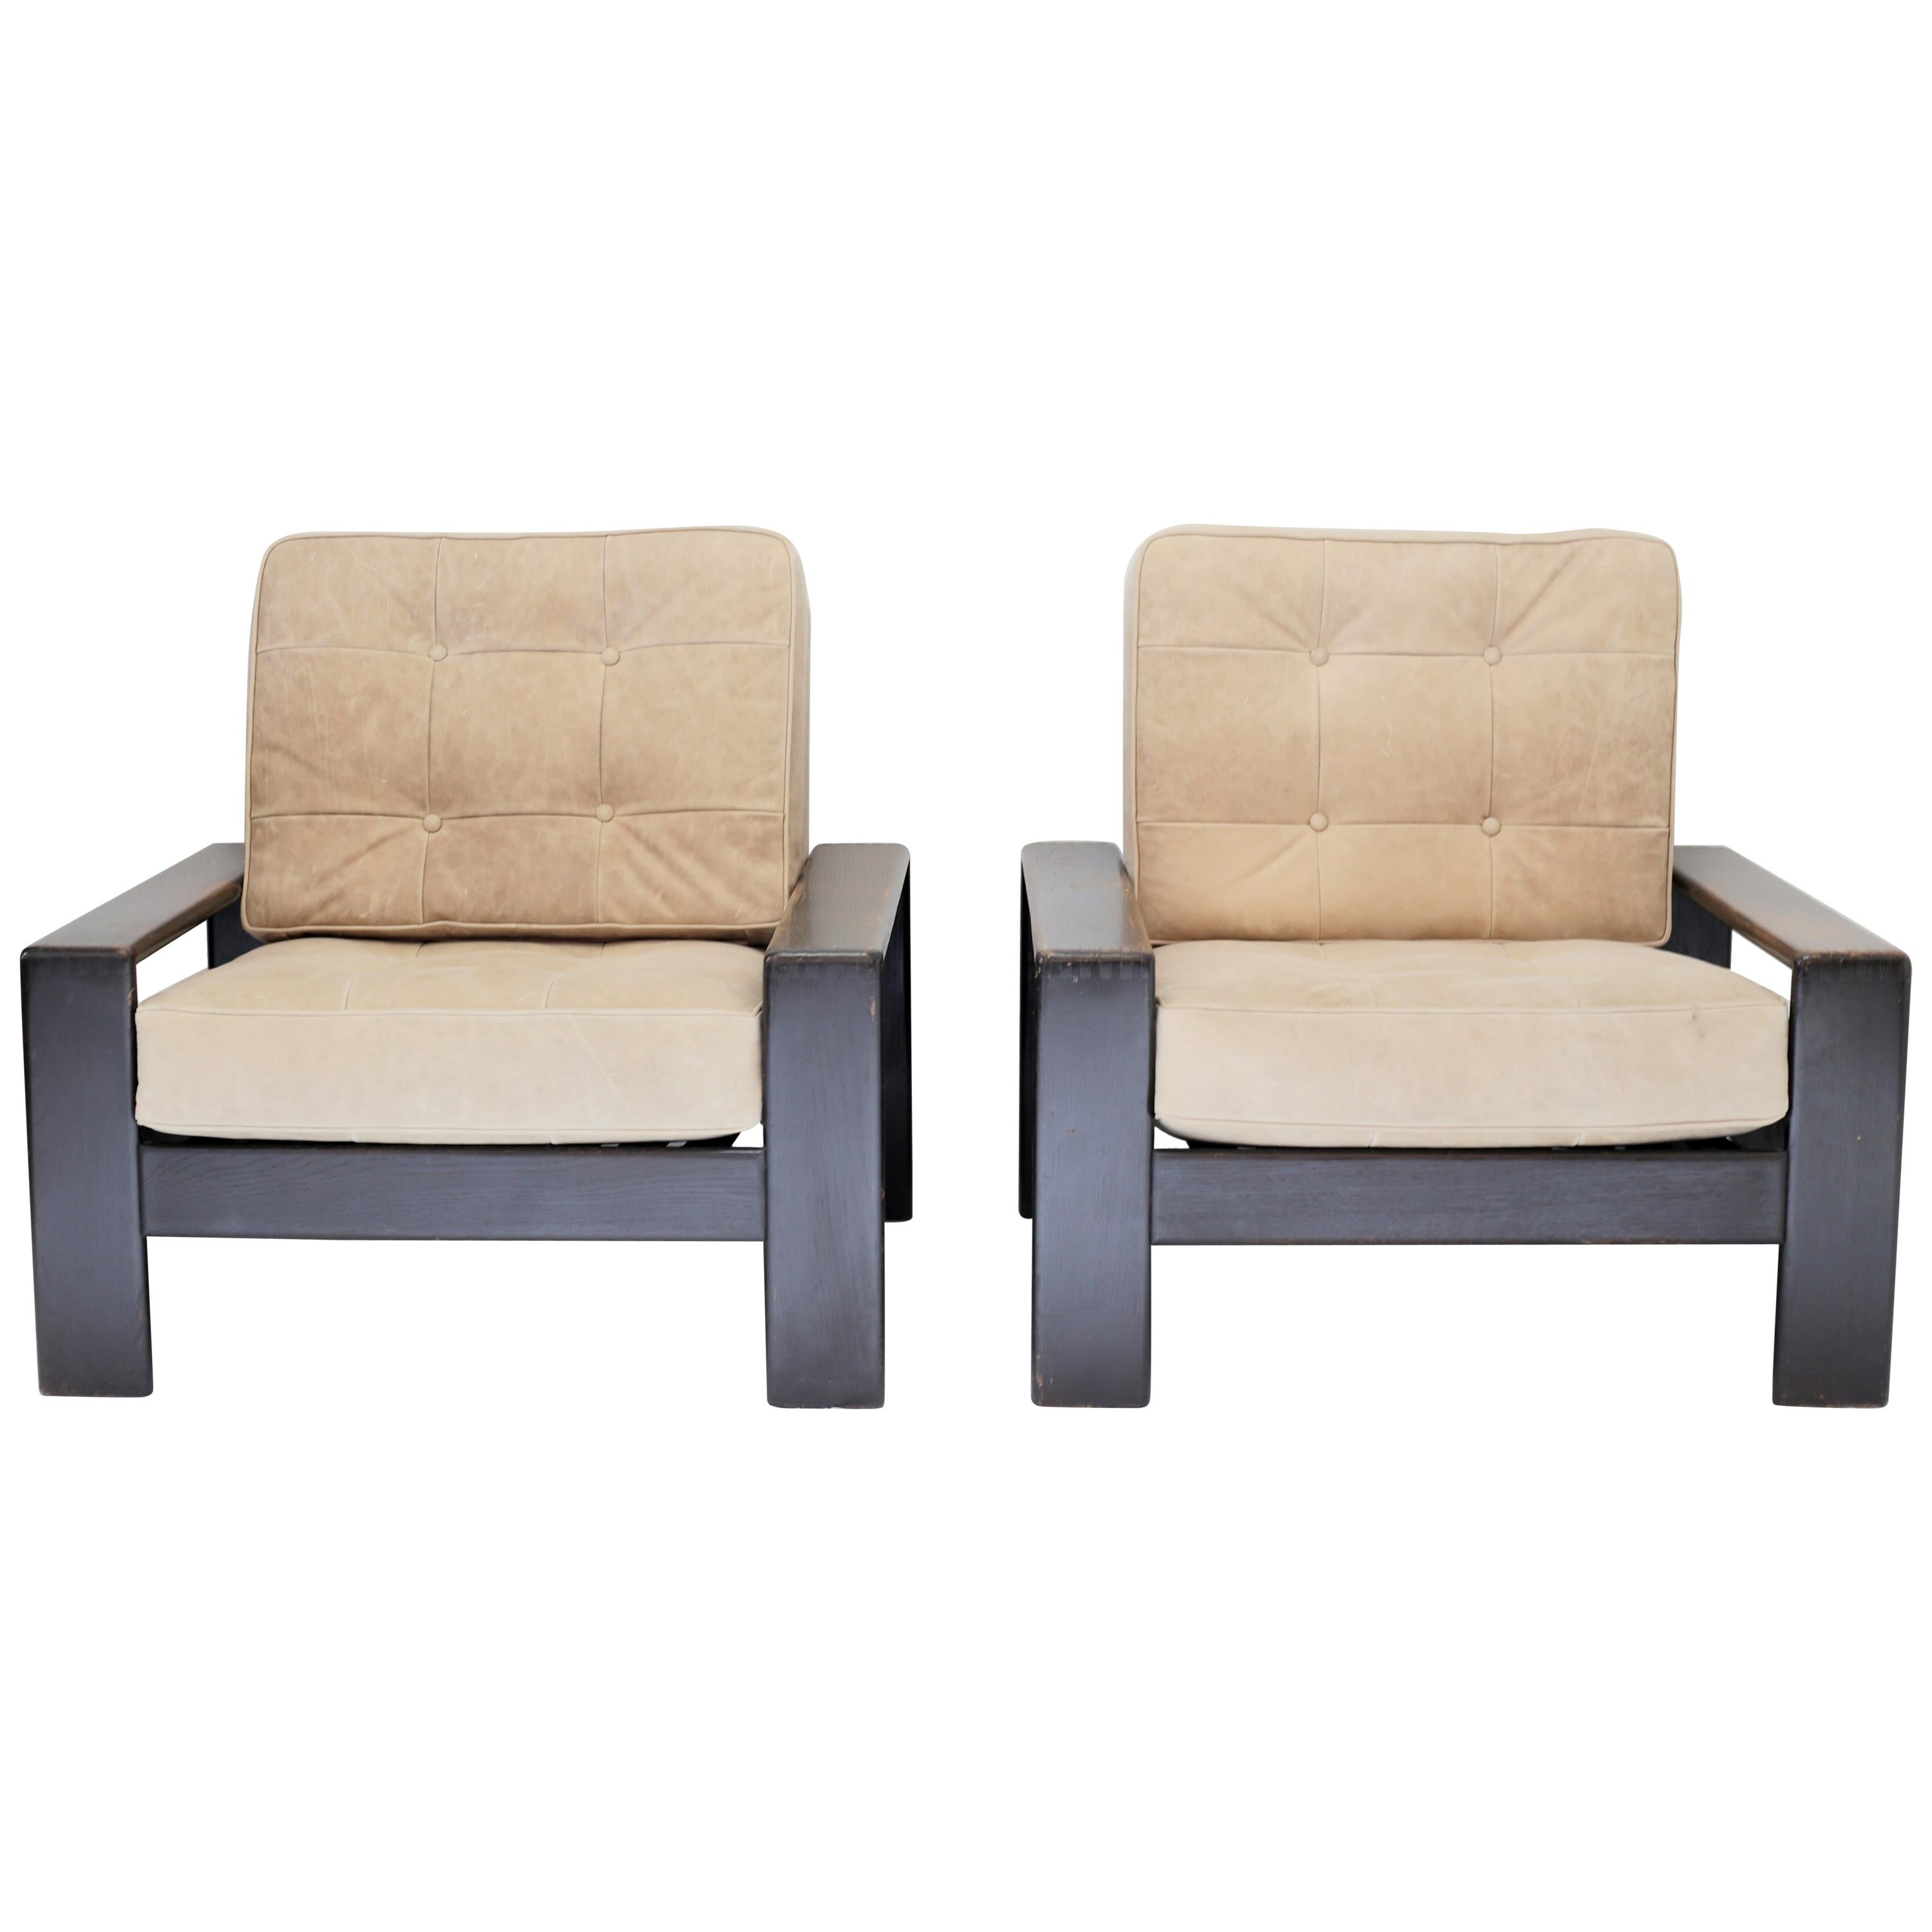 Pair of Vintage Leather and Wood Lounge Chairs